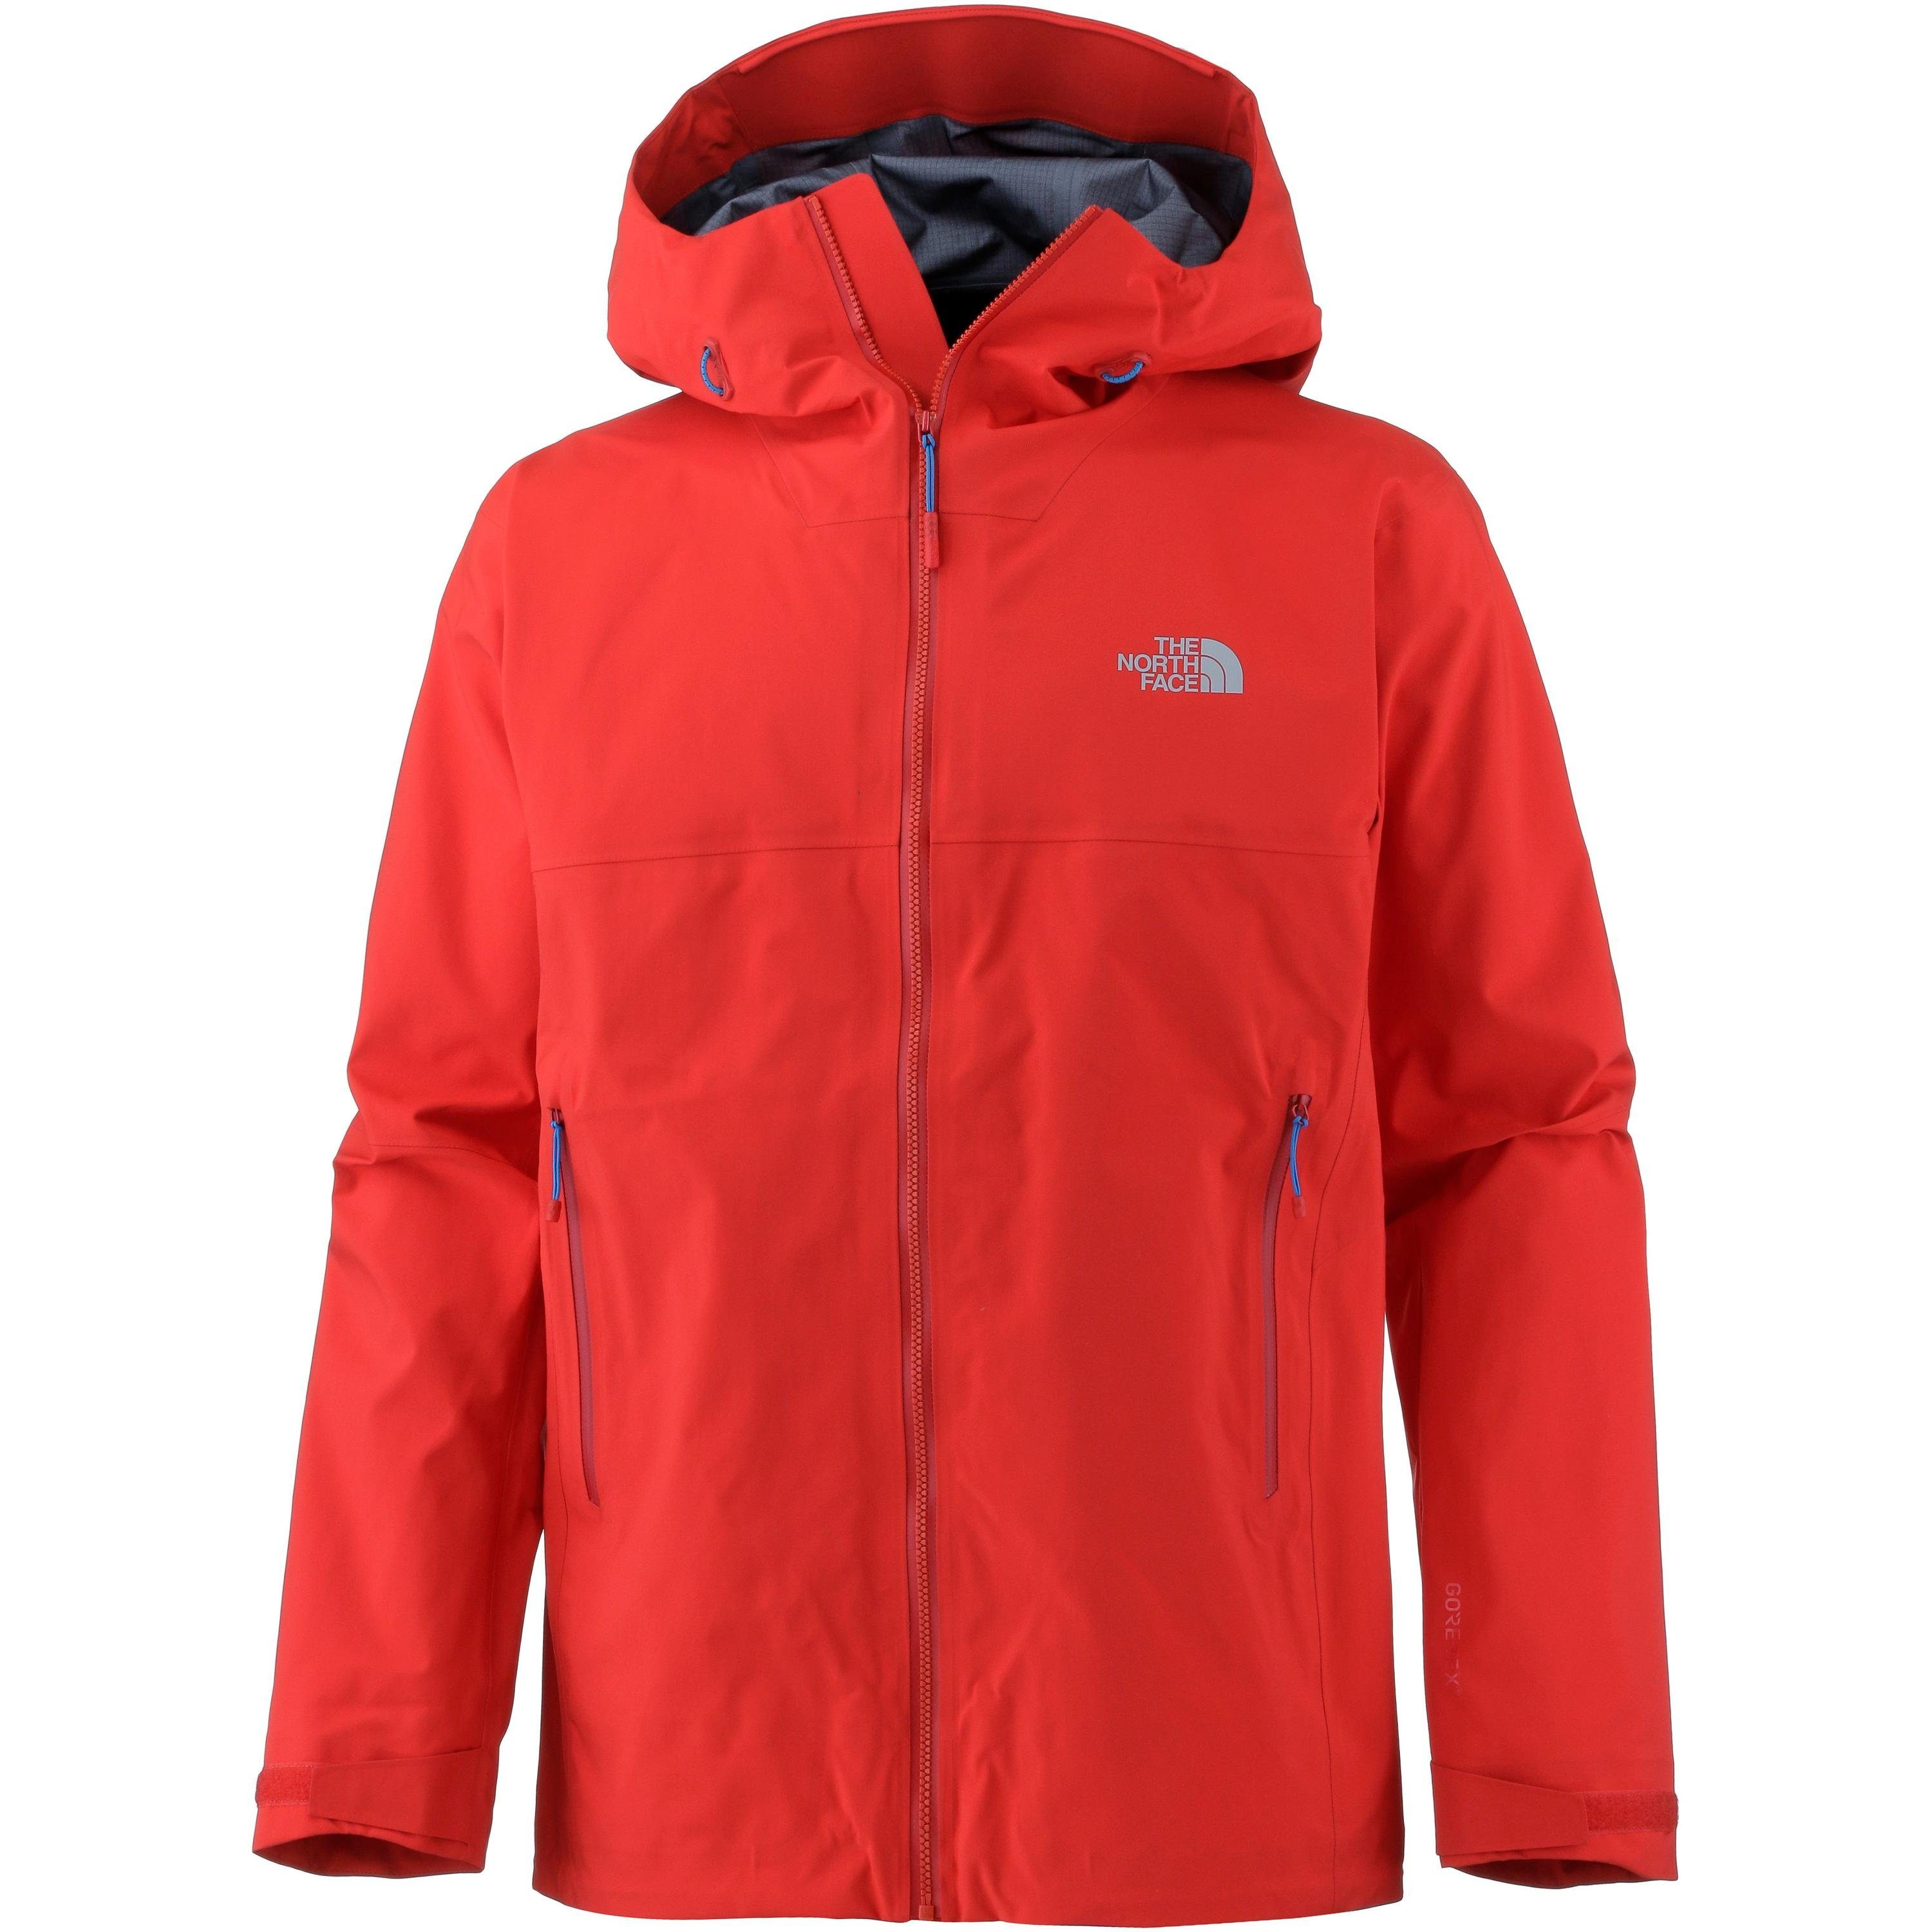 The North Face Outdoorjacke »Point Five GORE-TEX®«